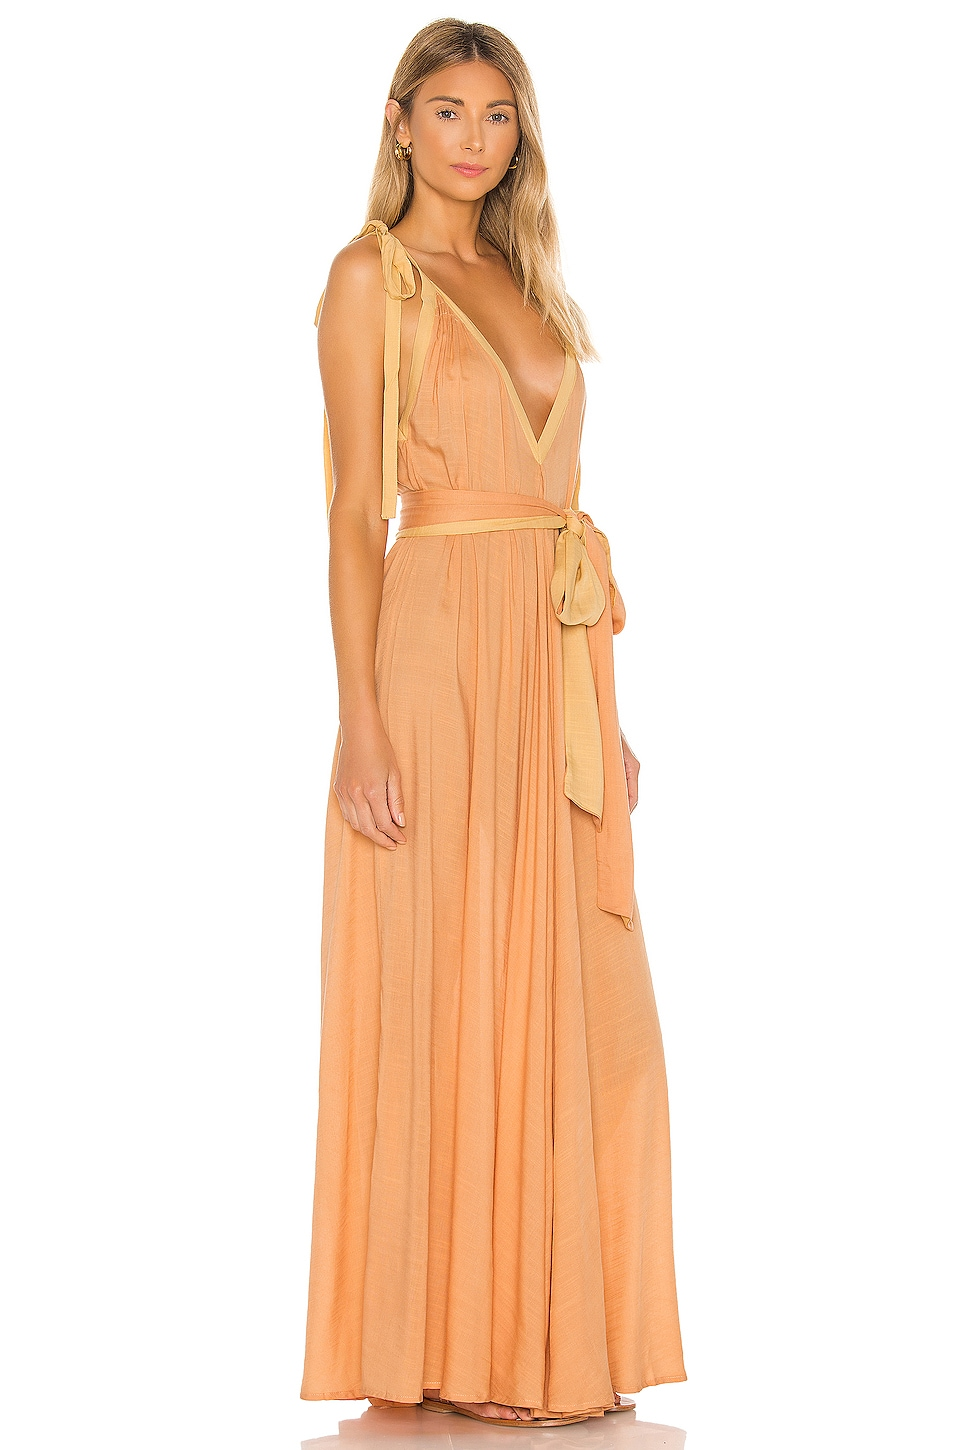 Vivian A-line Modern Goddess Maxi Dress, view 2, click to view large image.